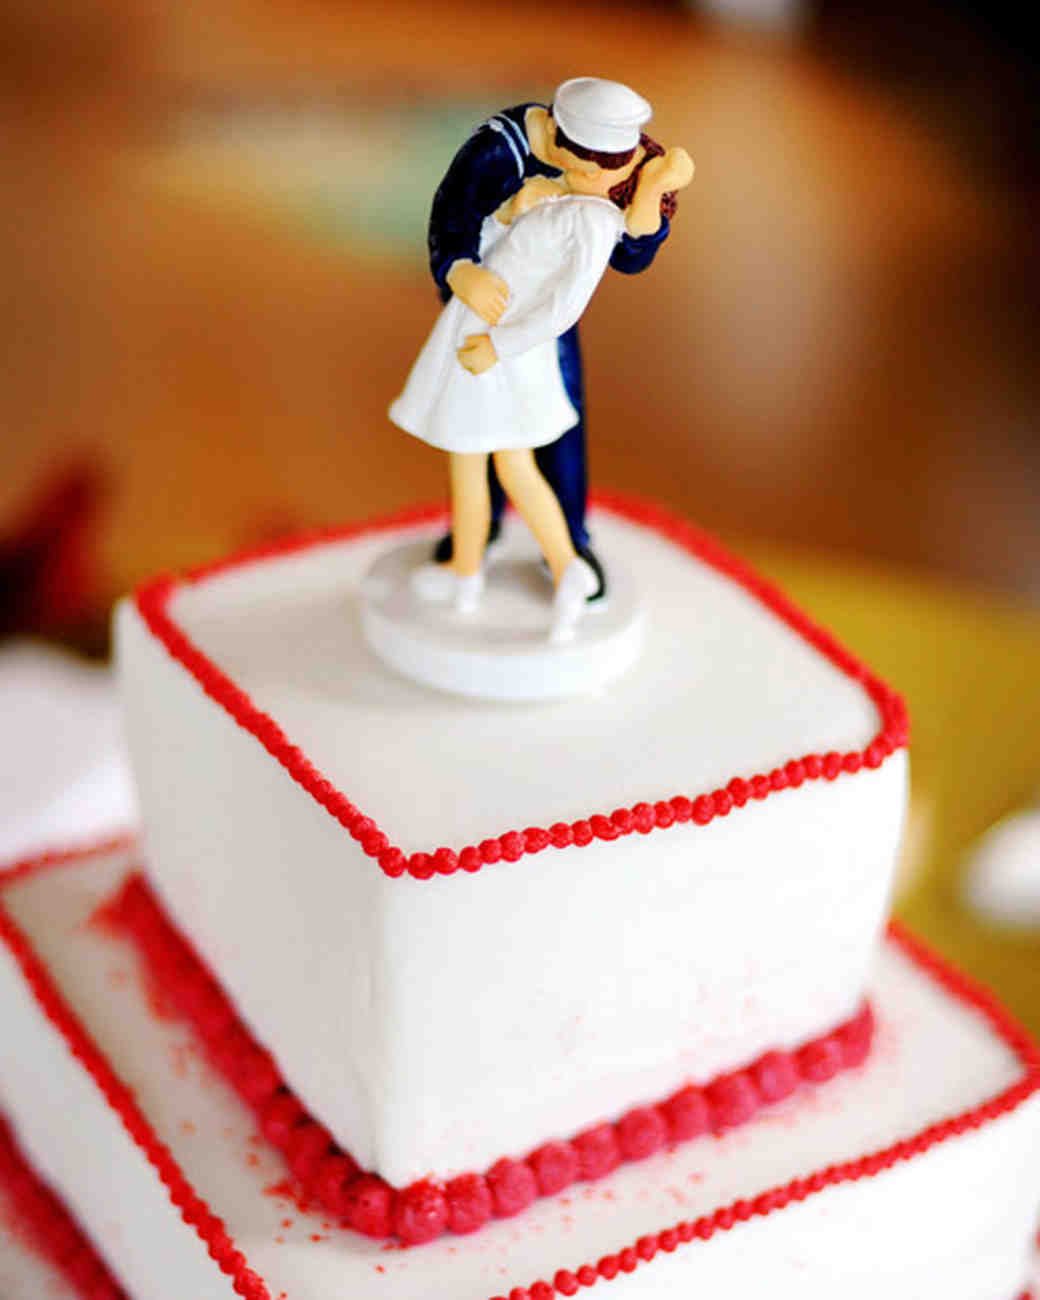 sailor and nurse wedding cake topper best cake toppers martha stewart weddings 19619